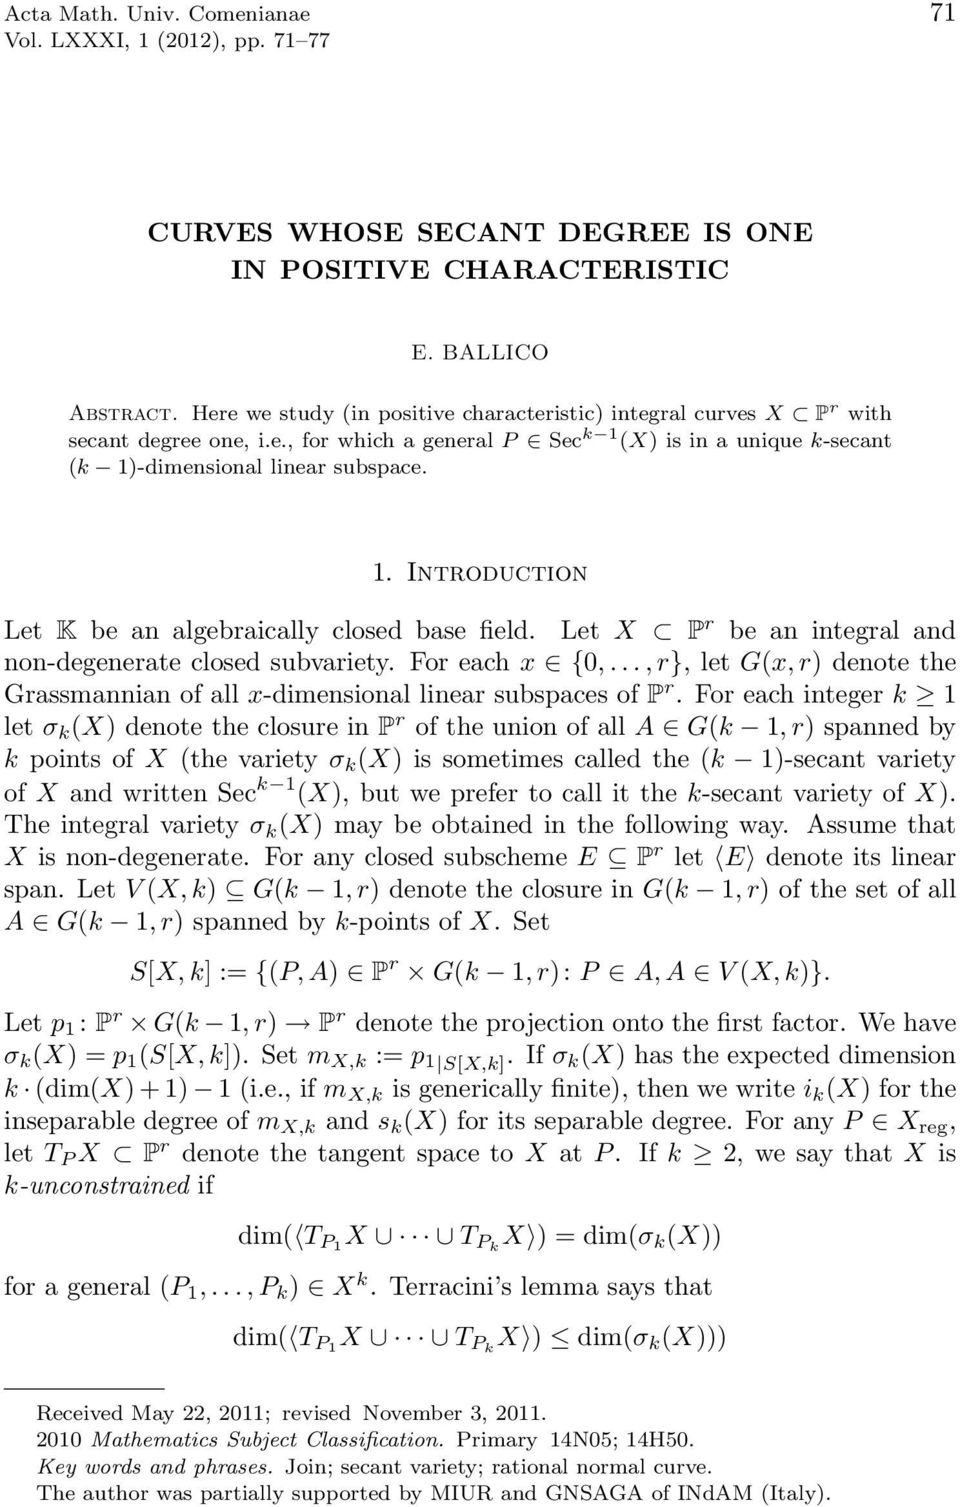 Let X P r be an integral and non-degenerate closed subvariety. For each x {0,..., r}, let G(x, r) denote the Grassmannian of all x-dimensional linear subspaces of P r.